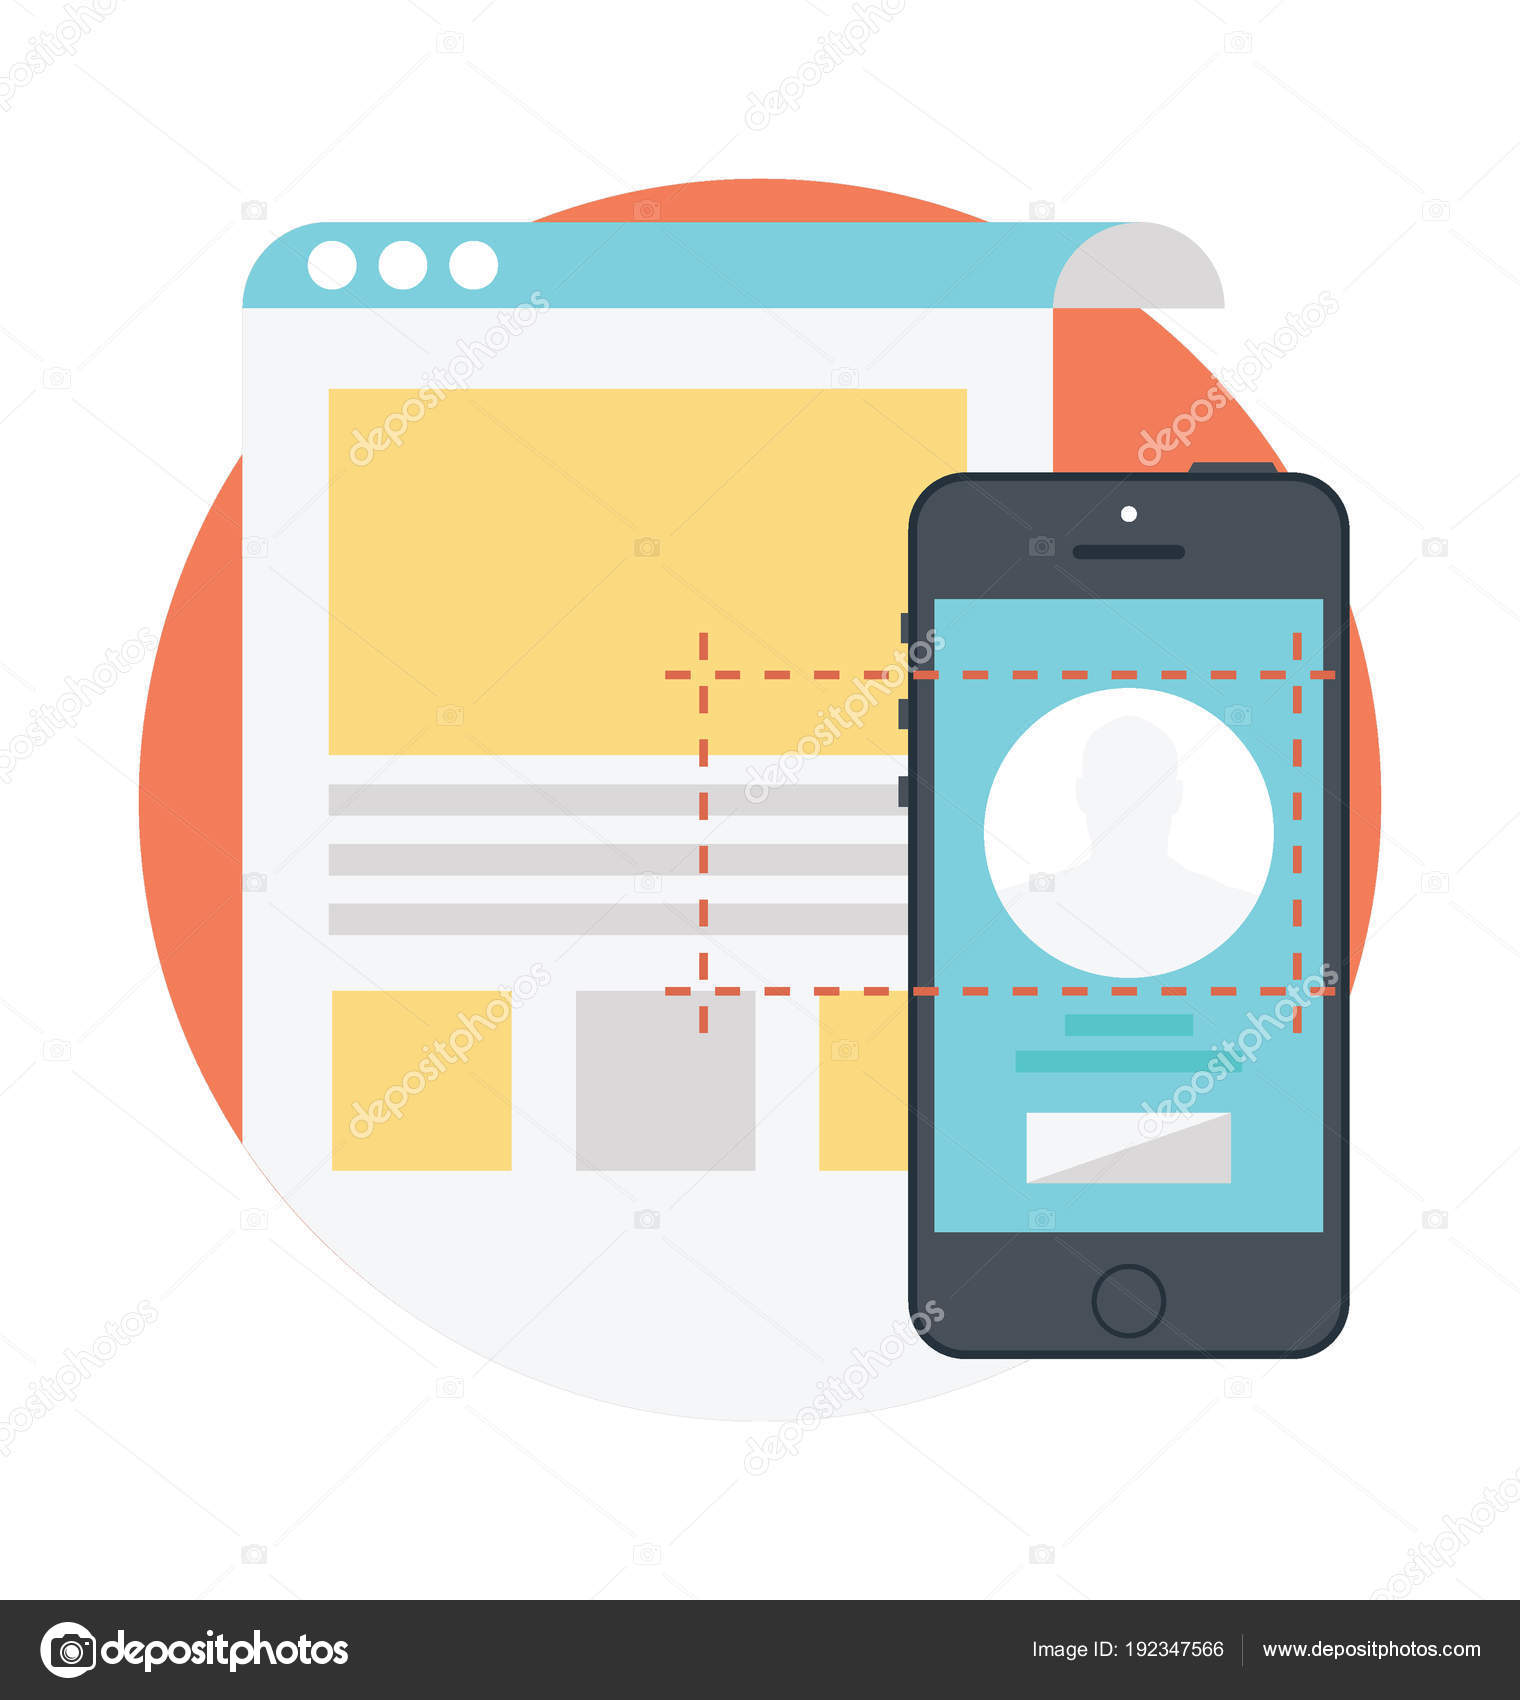 User Interface Design Mobile Layouts Flat Design Concept App Development Stock Vector C Prosymbols 192347566